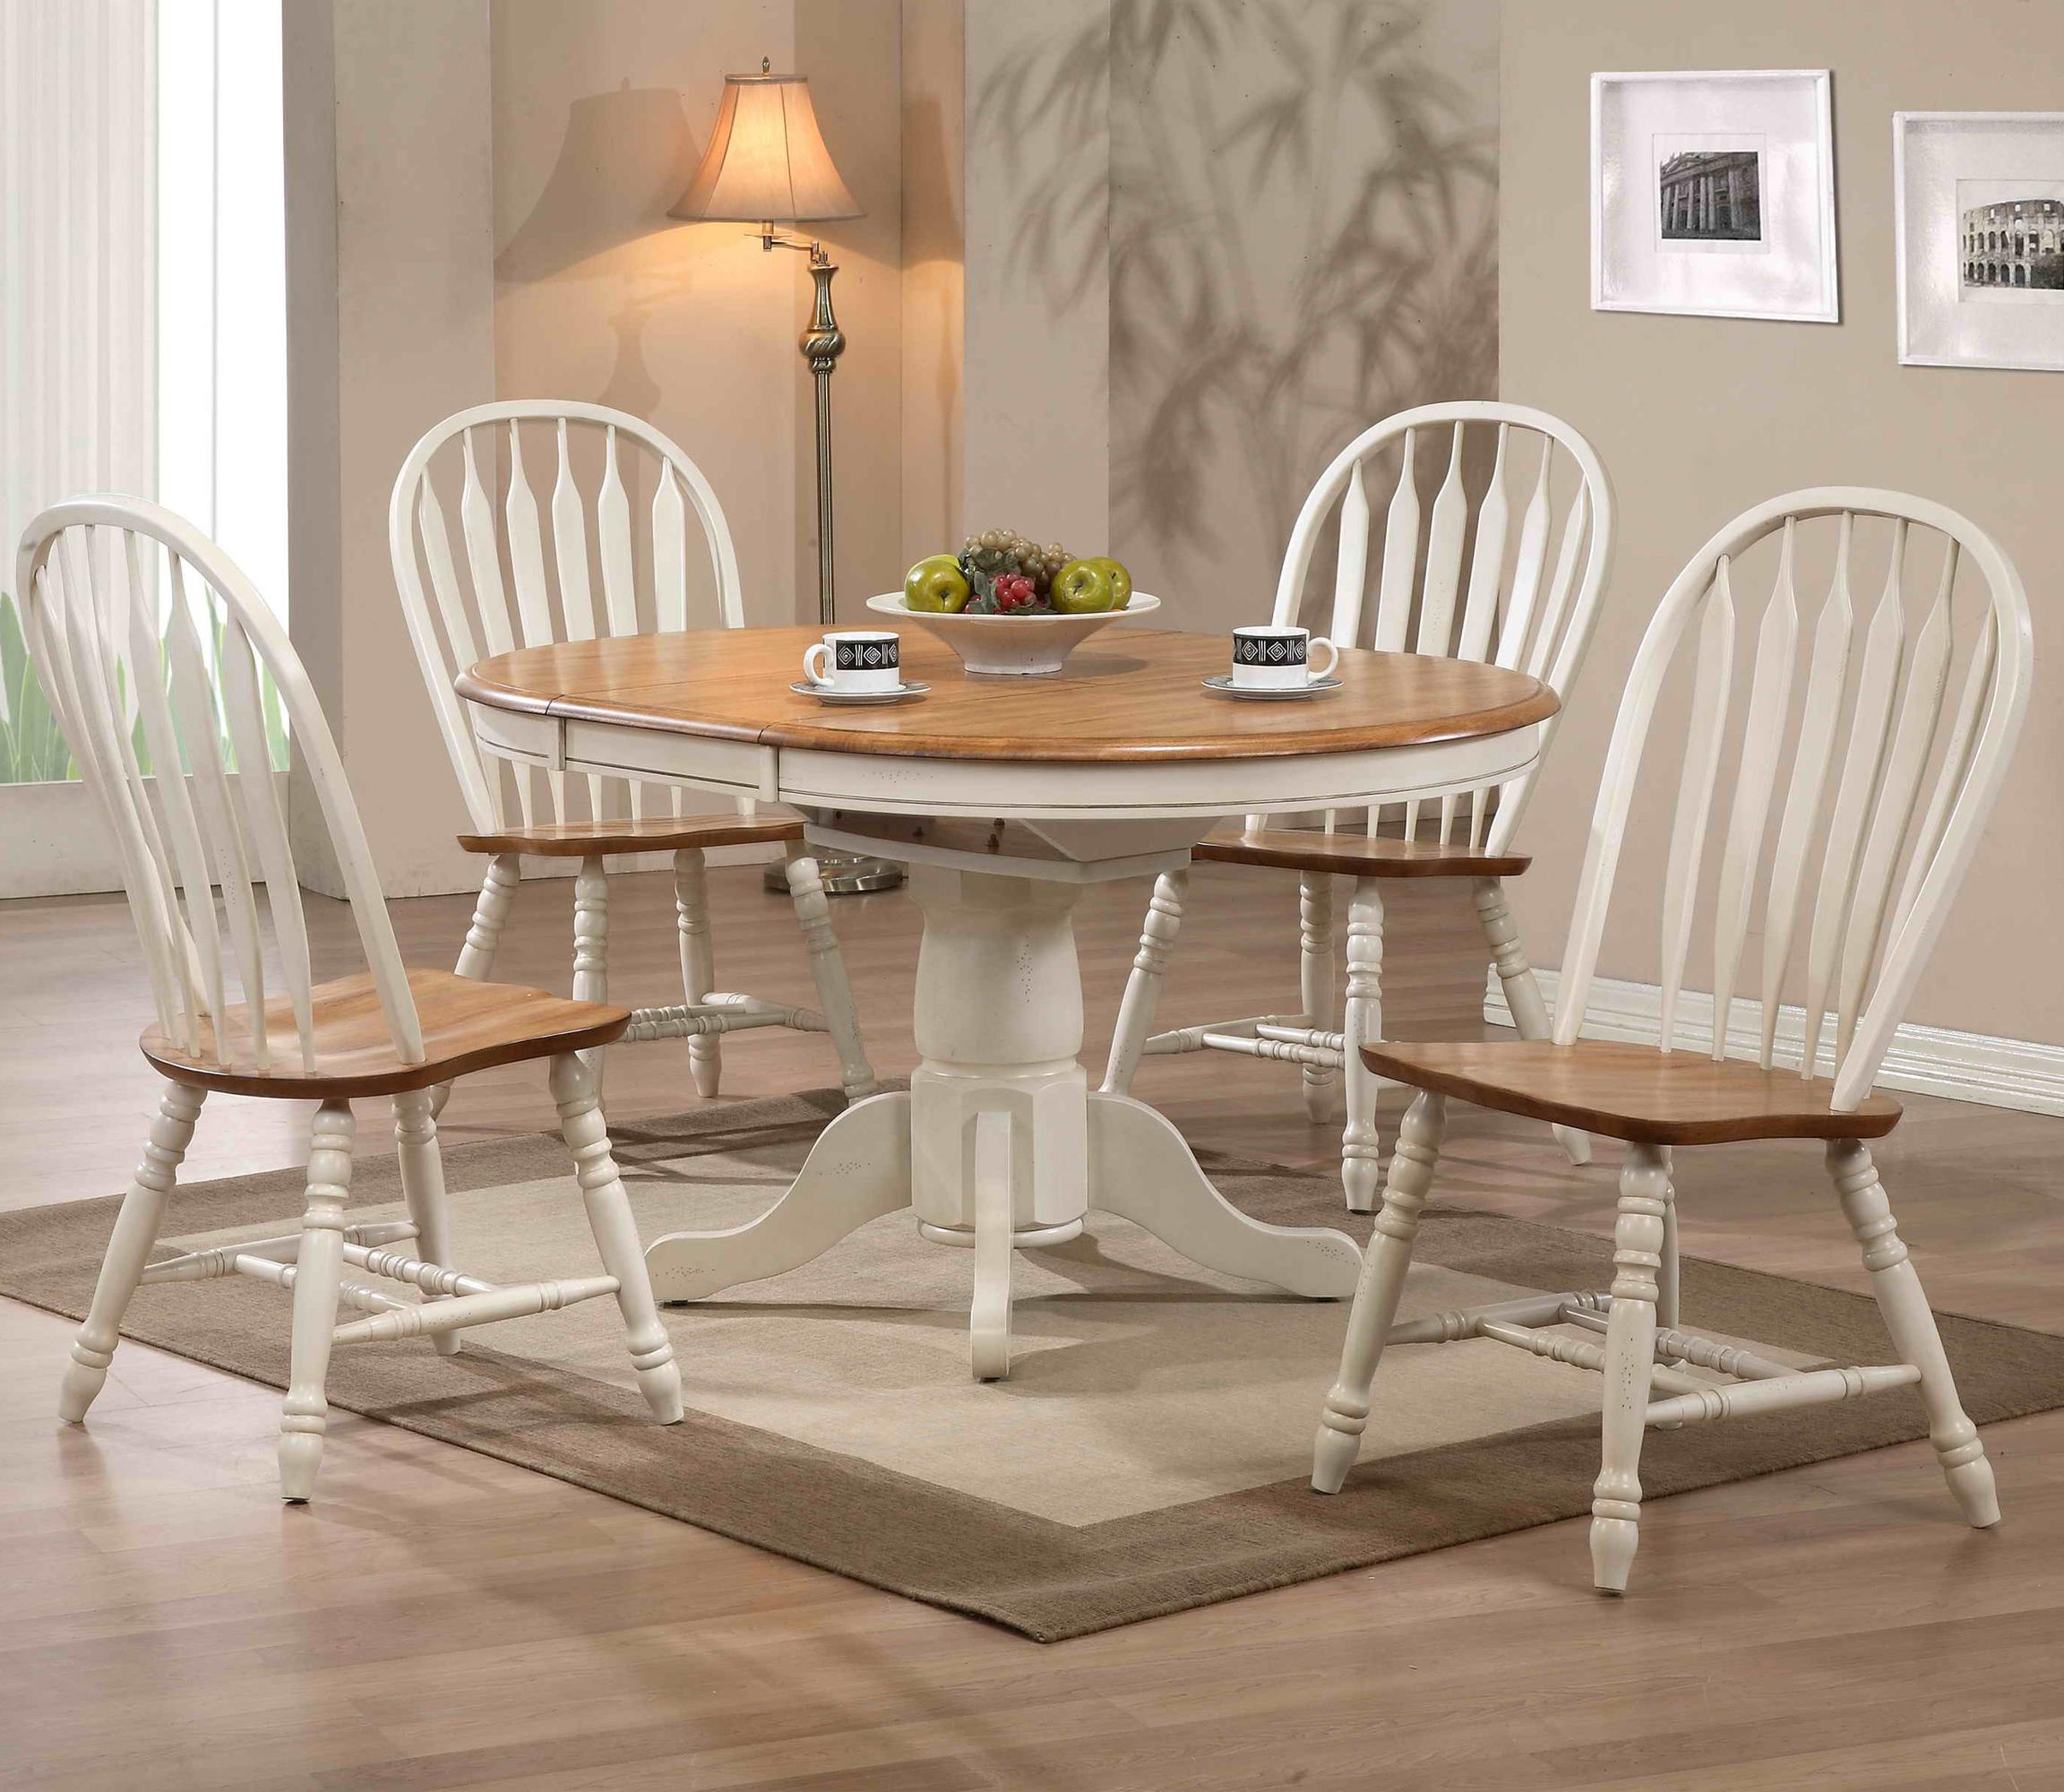 E.C.I. Furniture Dining  5 Piece Set - Item Number: 2150-20-T/P/4x2190-20-S